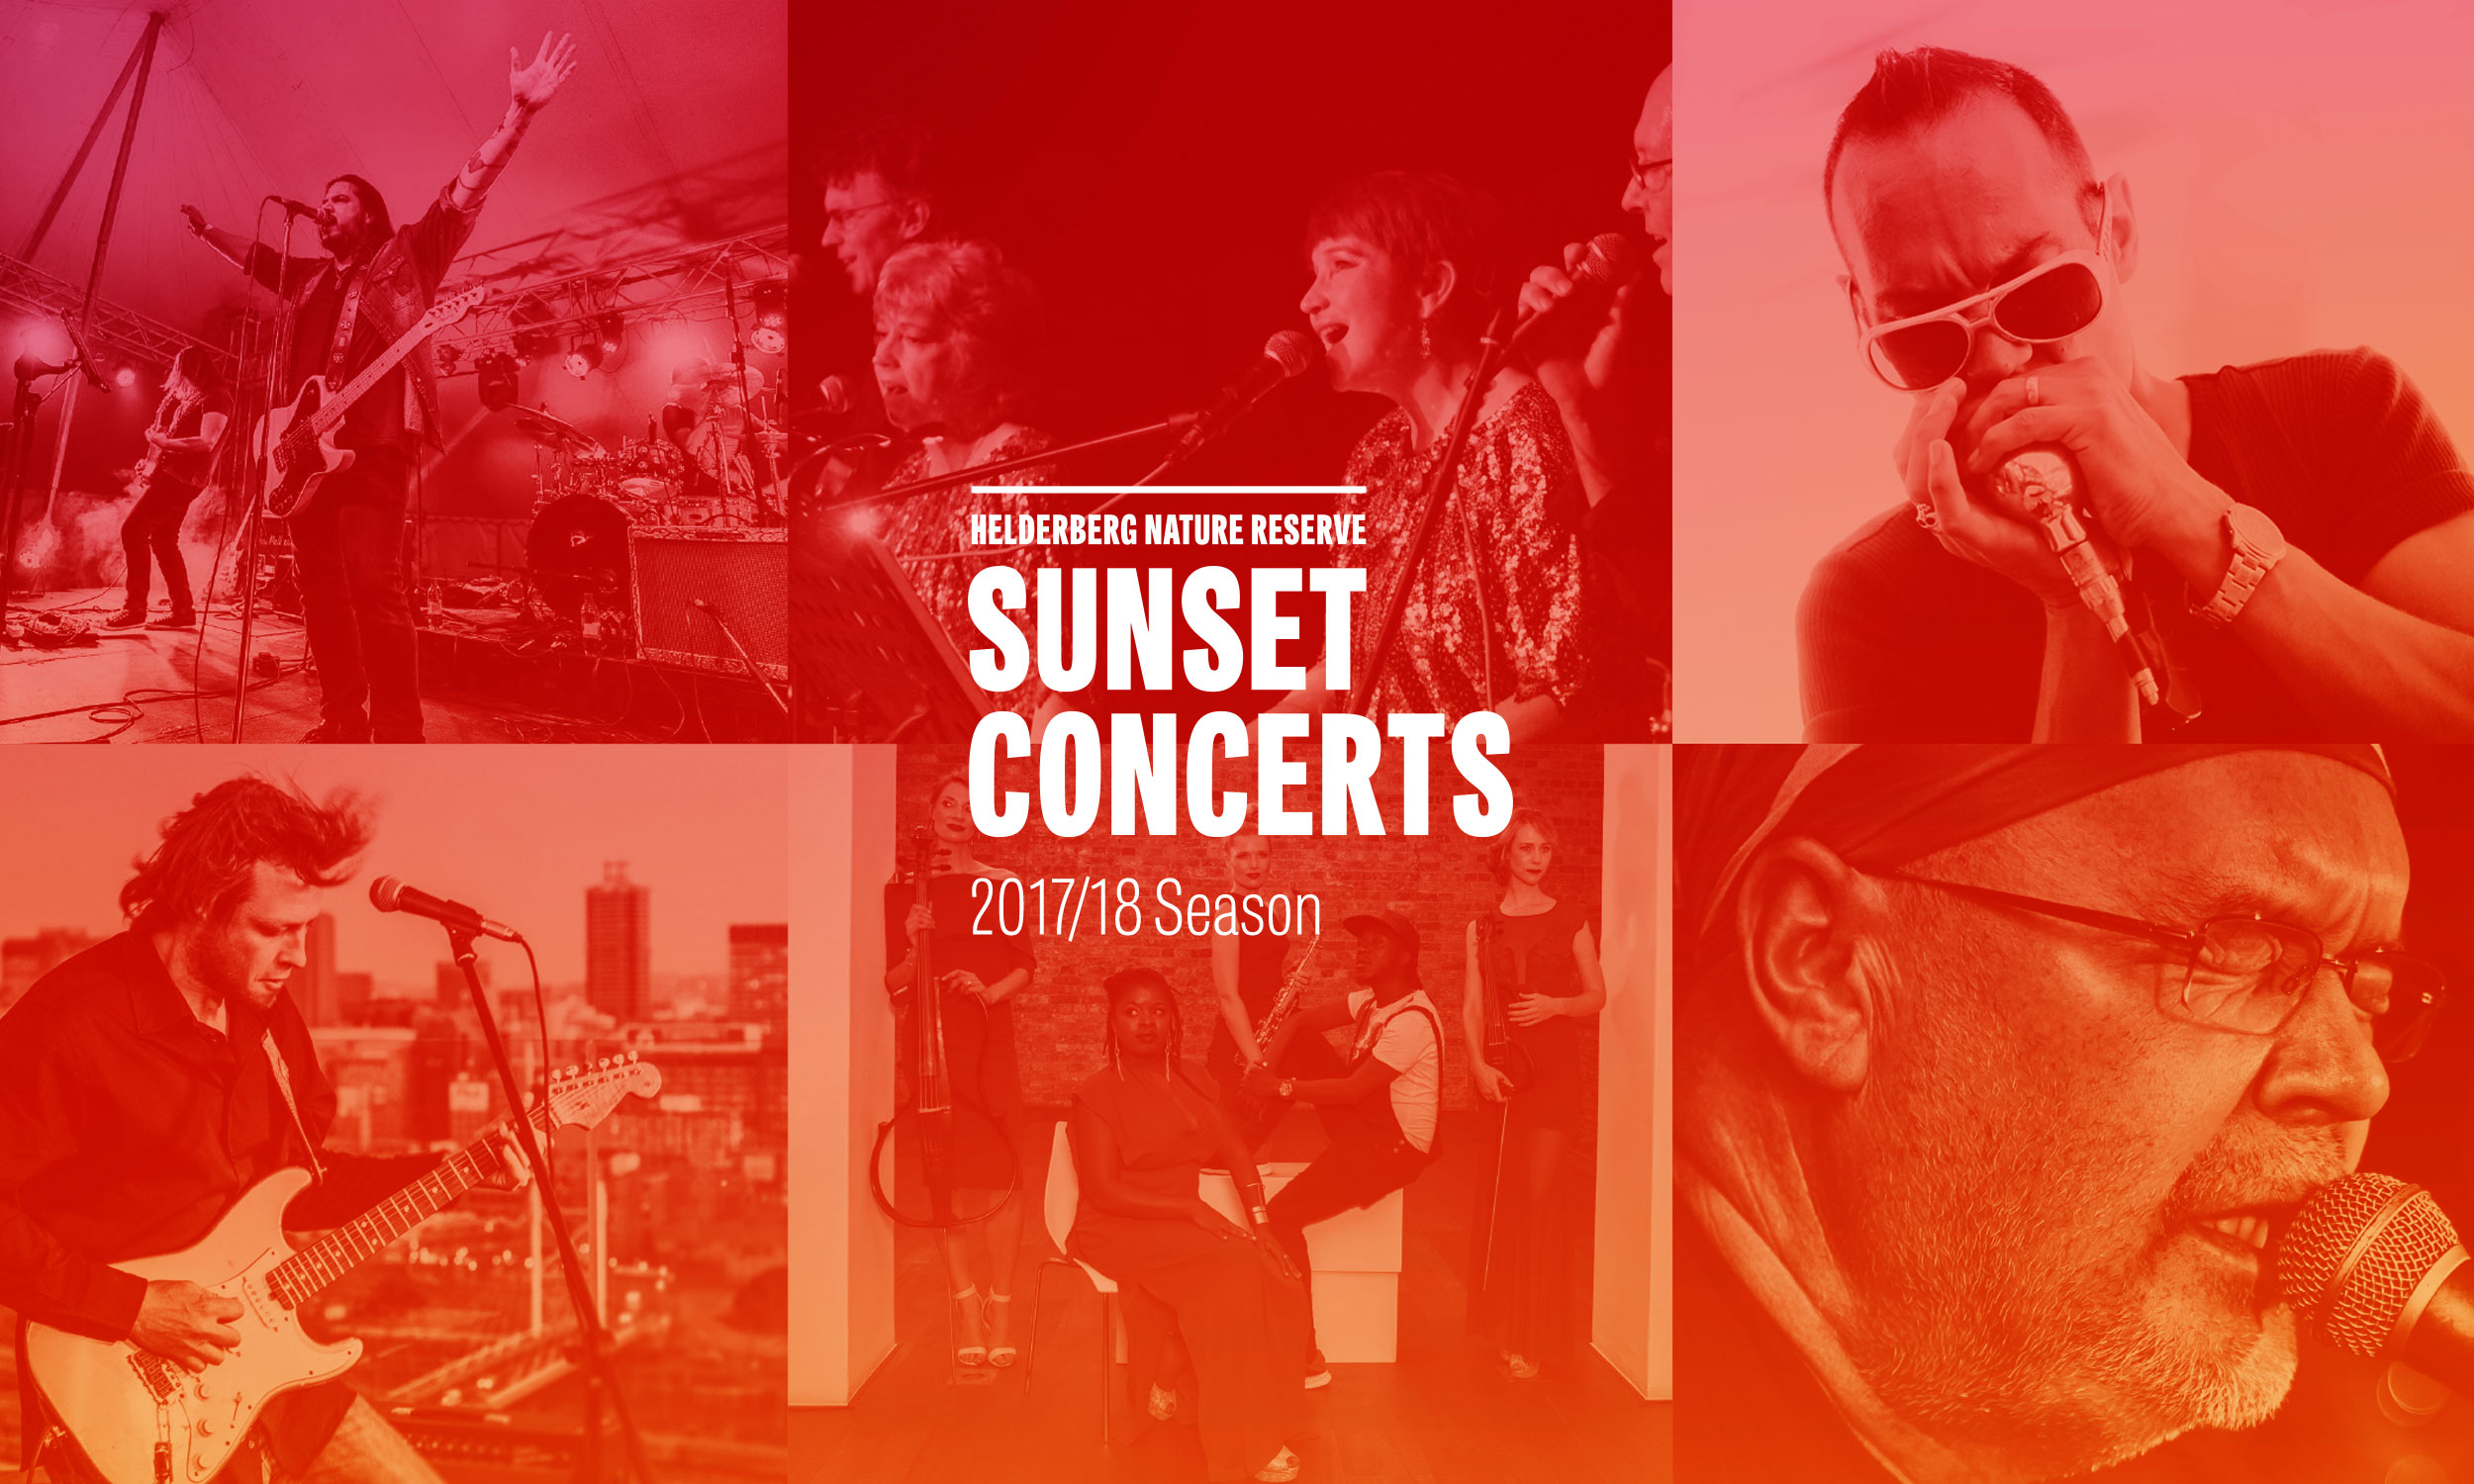 Sunset Concerts identity – design by Ian Whalley